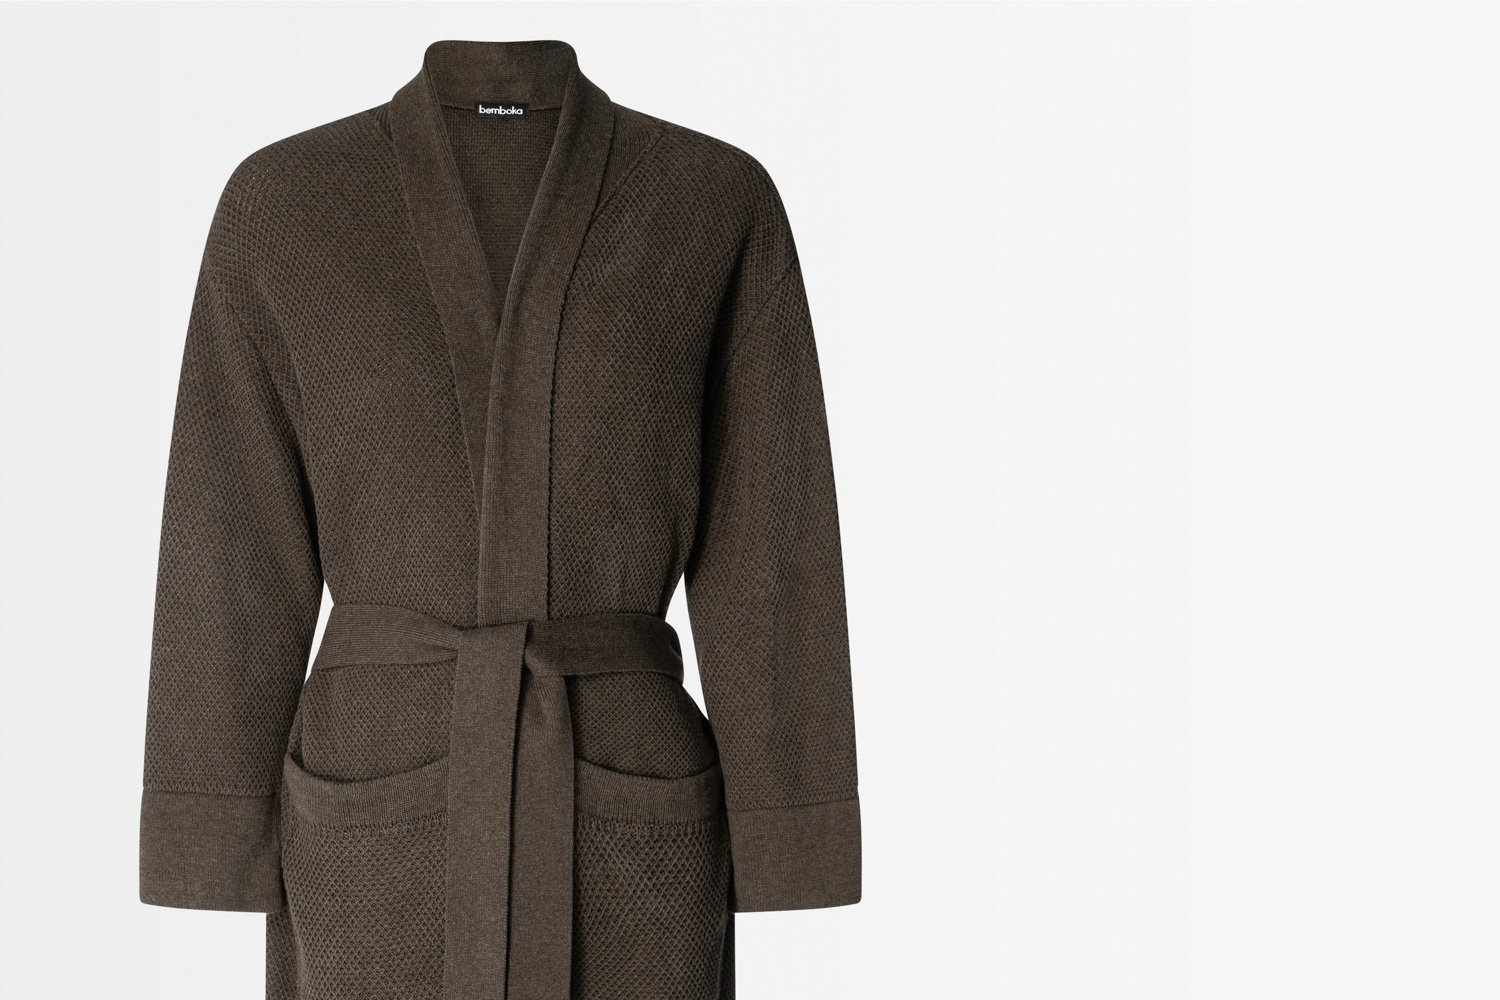 knitted bathrobe in chocolate colour